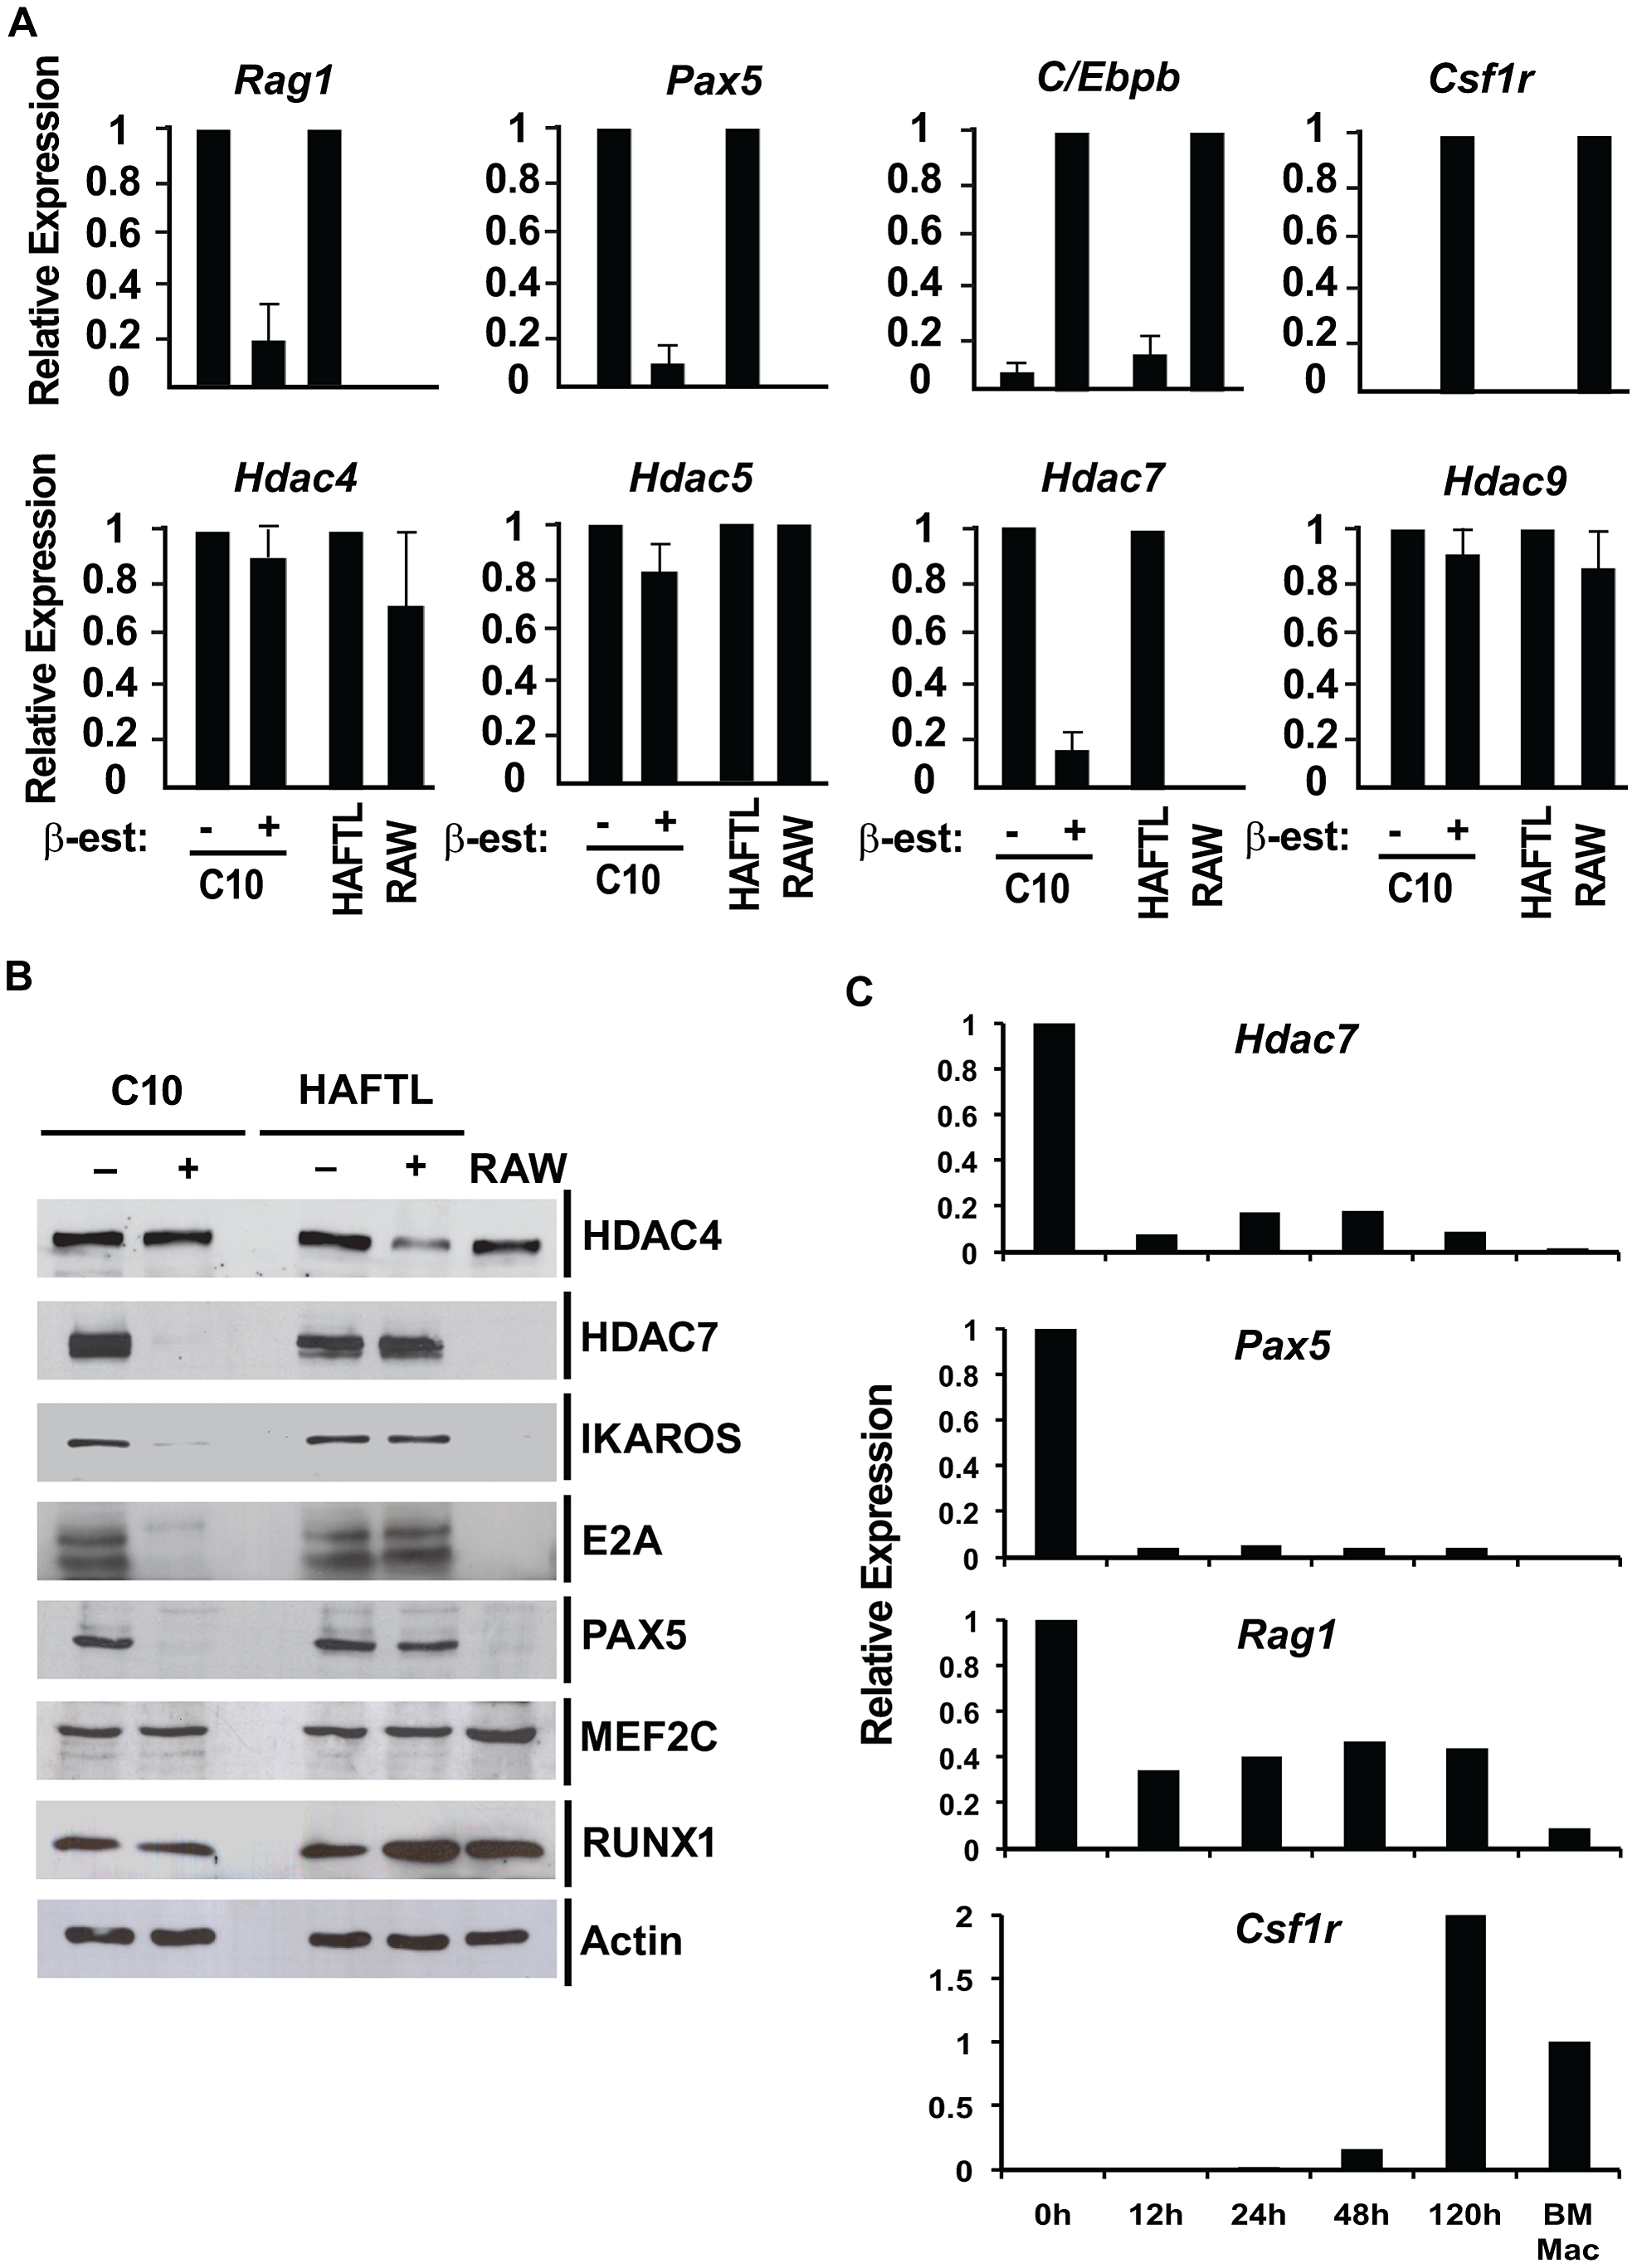 HDAC7 is down-regulated during the transifferentiation of pre-B cells into macrophages.